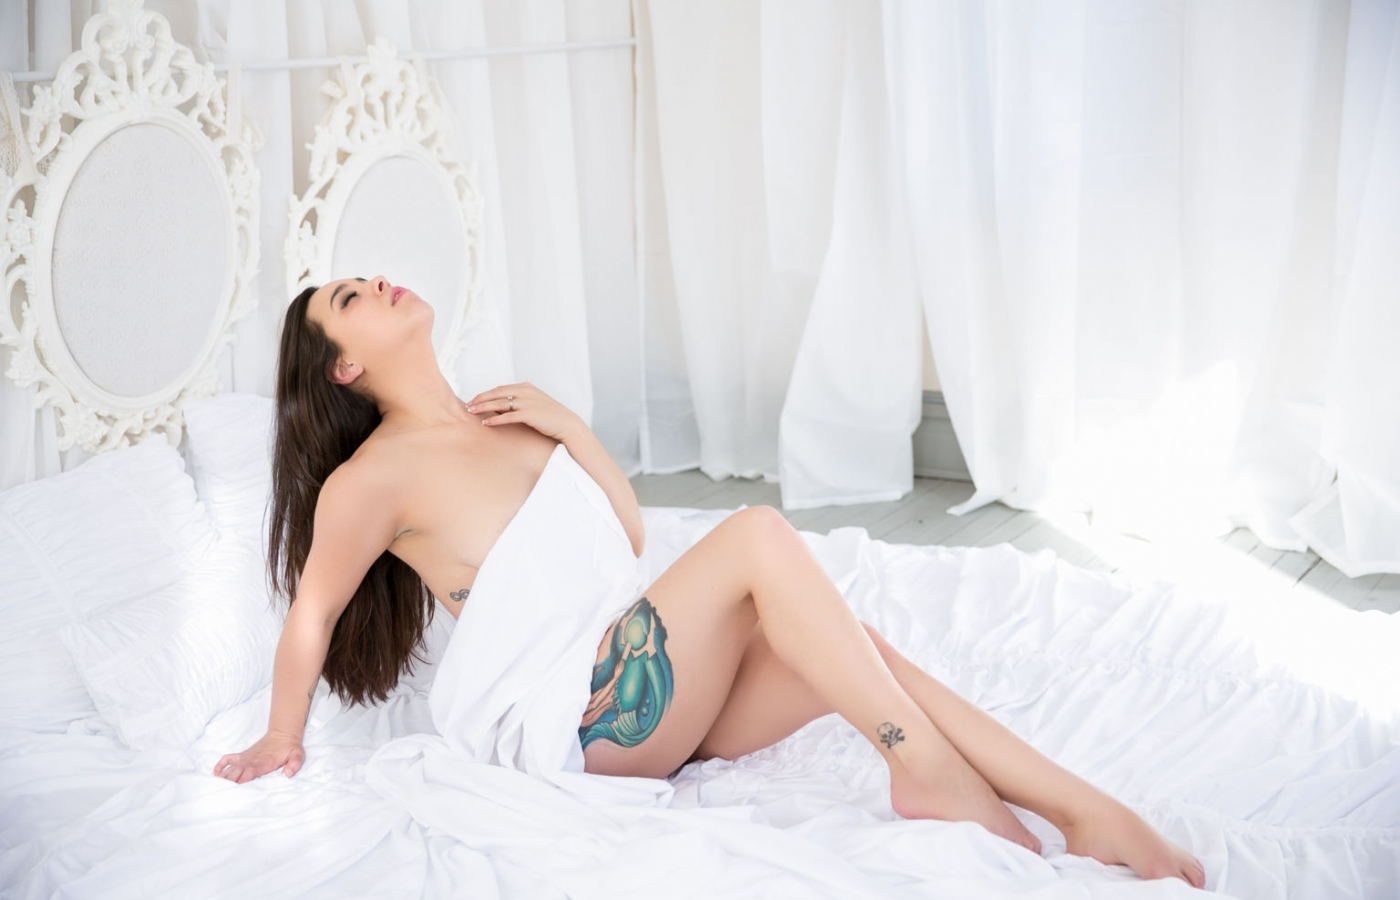 Denver_Boudoir_Photograher15